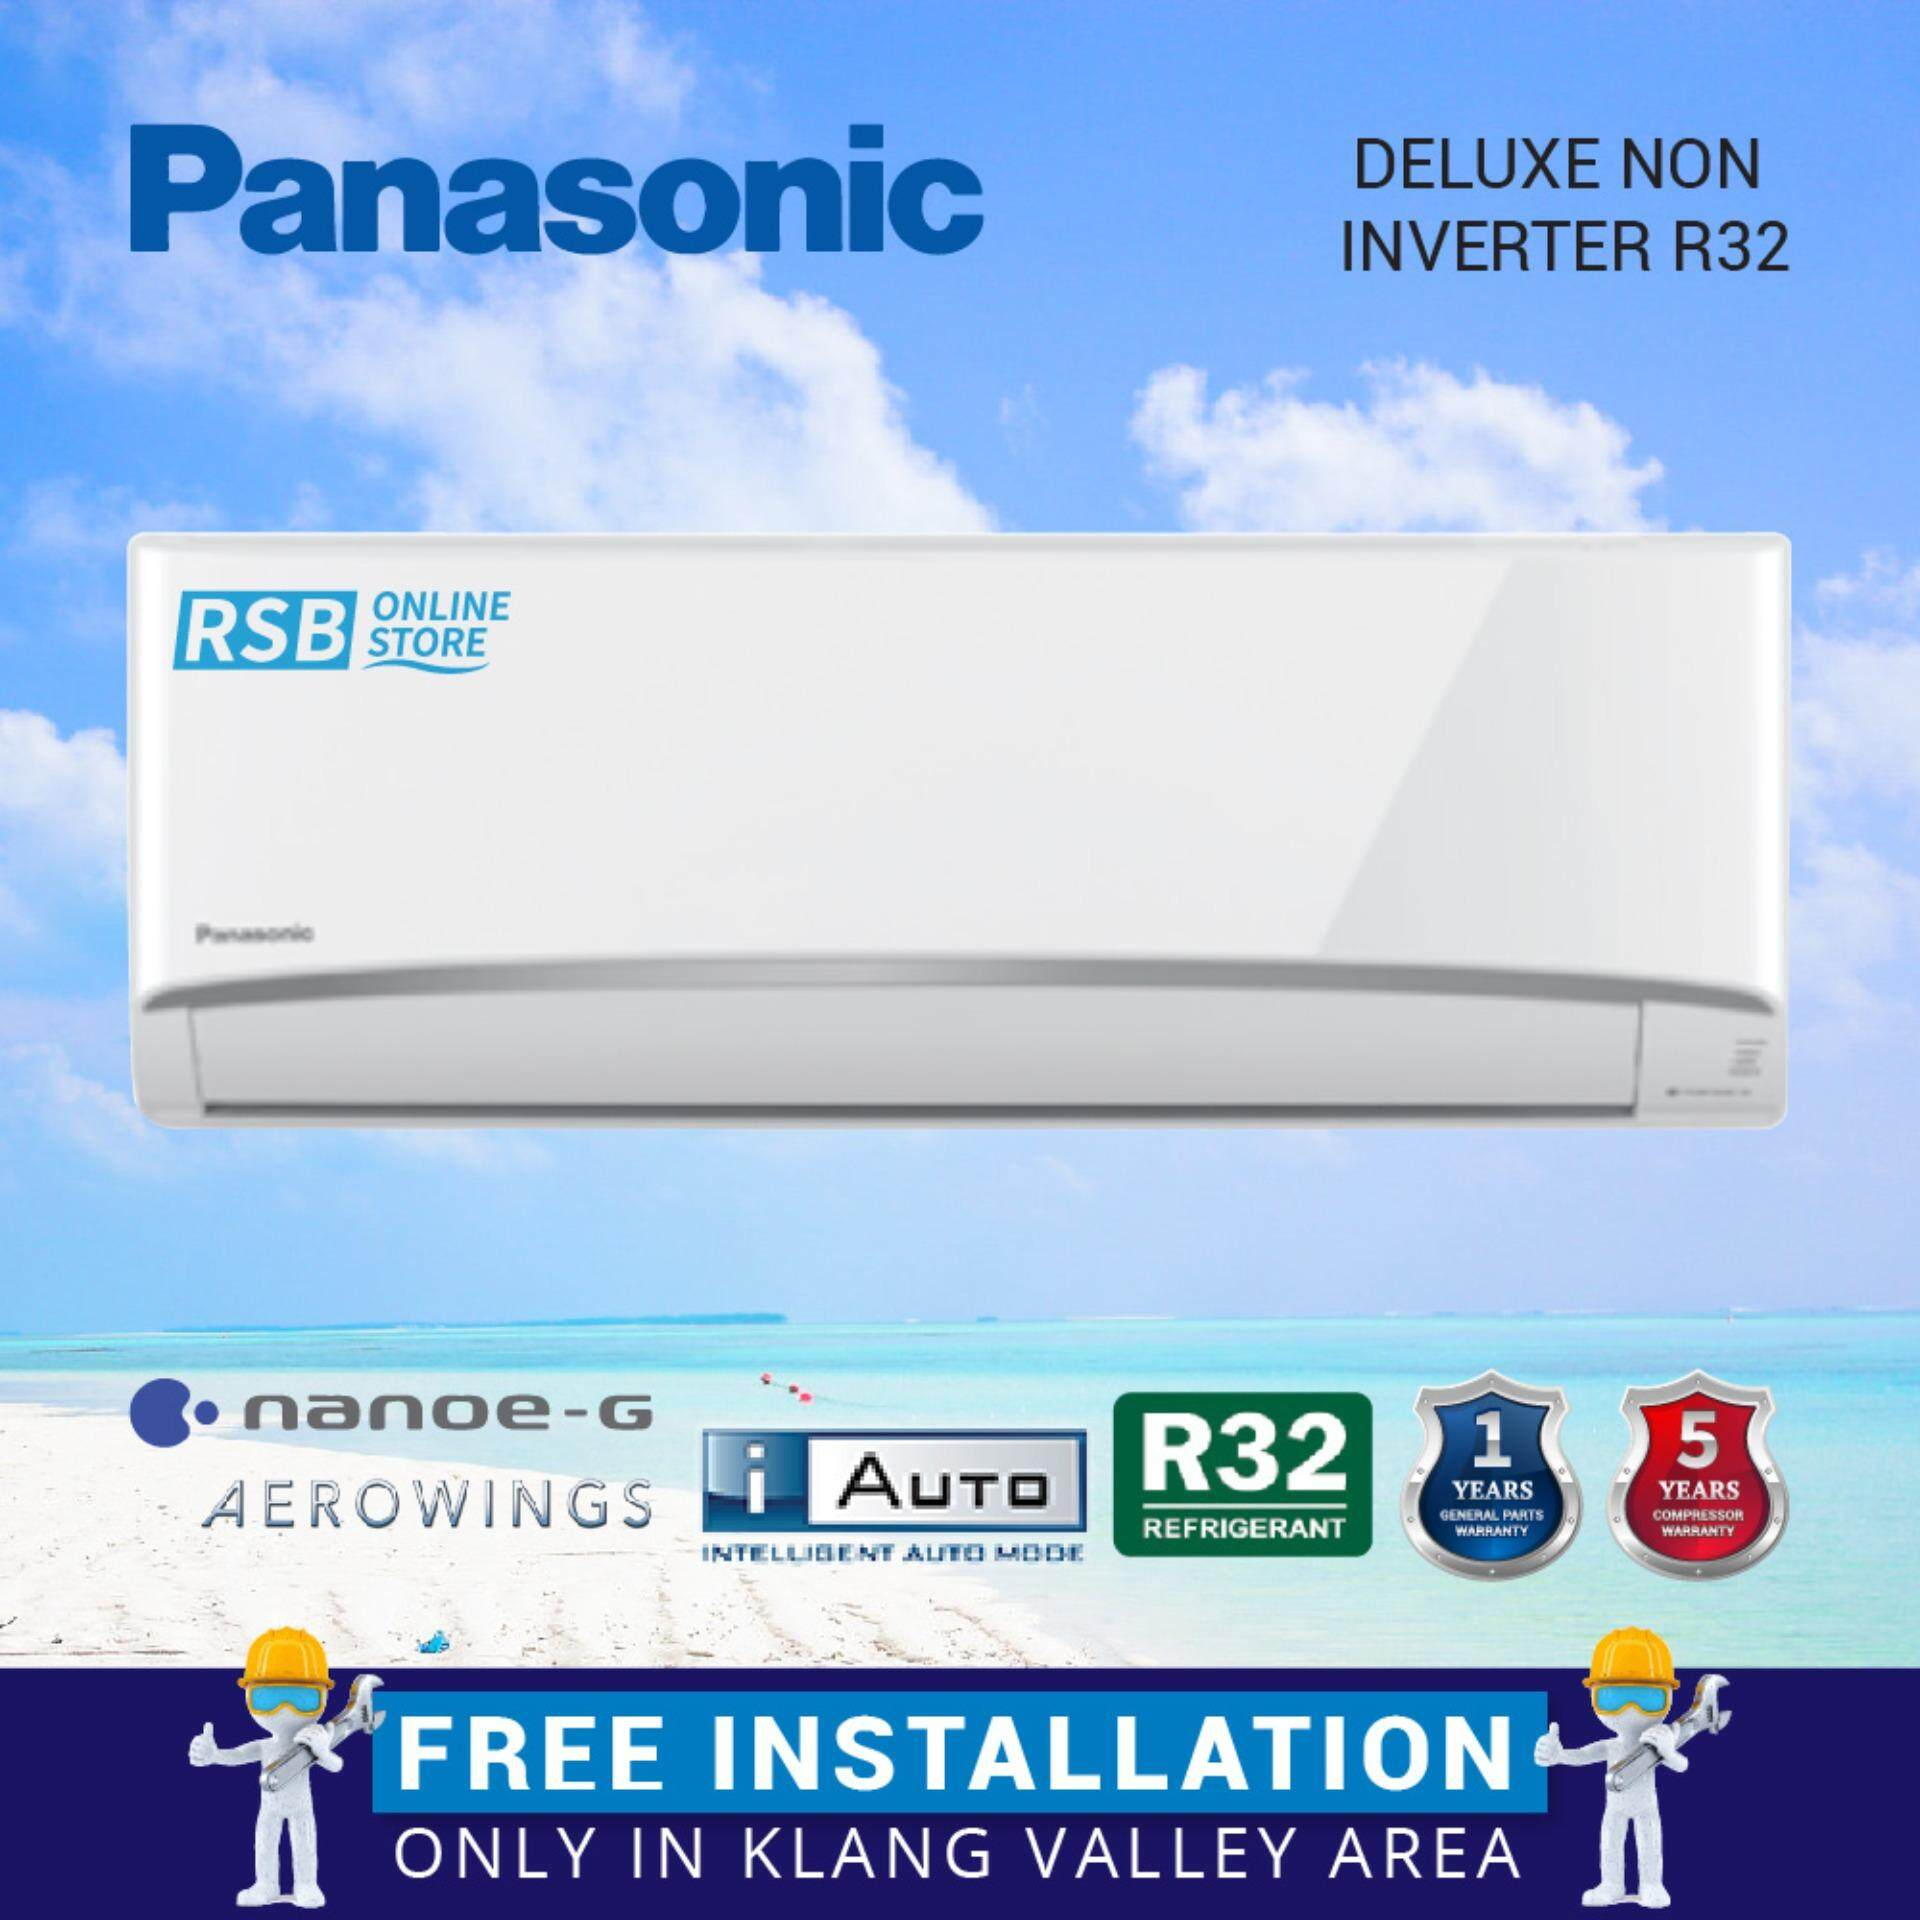 Free Installation Panasonic Air Conditioner Deluxe Non Inverter R32 2.5HP CS-N24VKH_FI + I-Auto + R32 Refrigerent + Aerowings + Nanoe-G